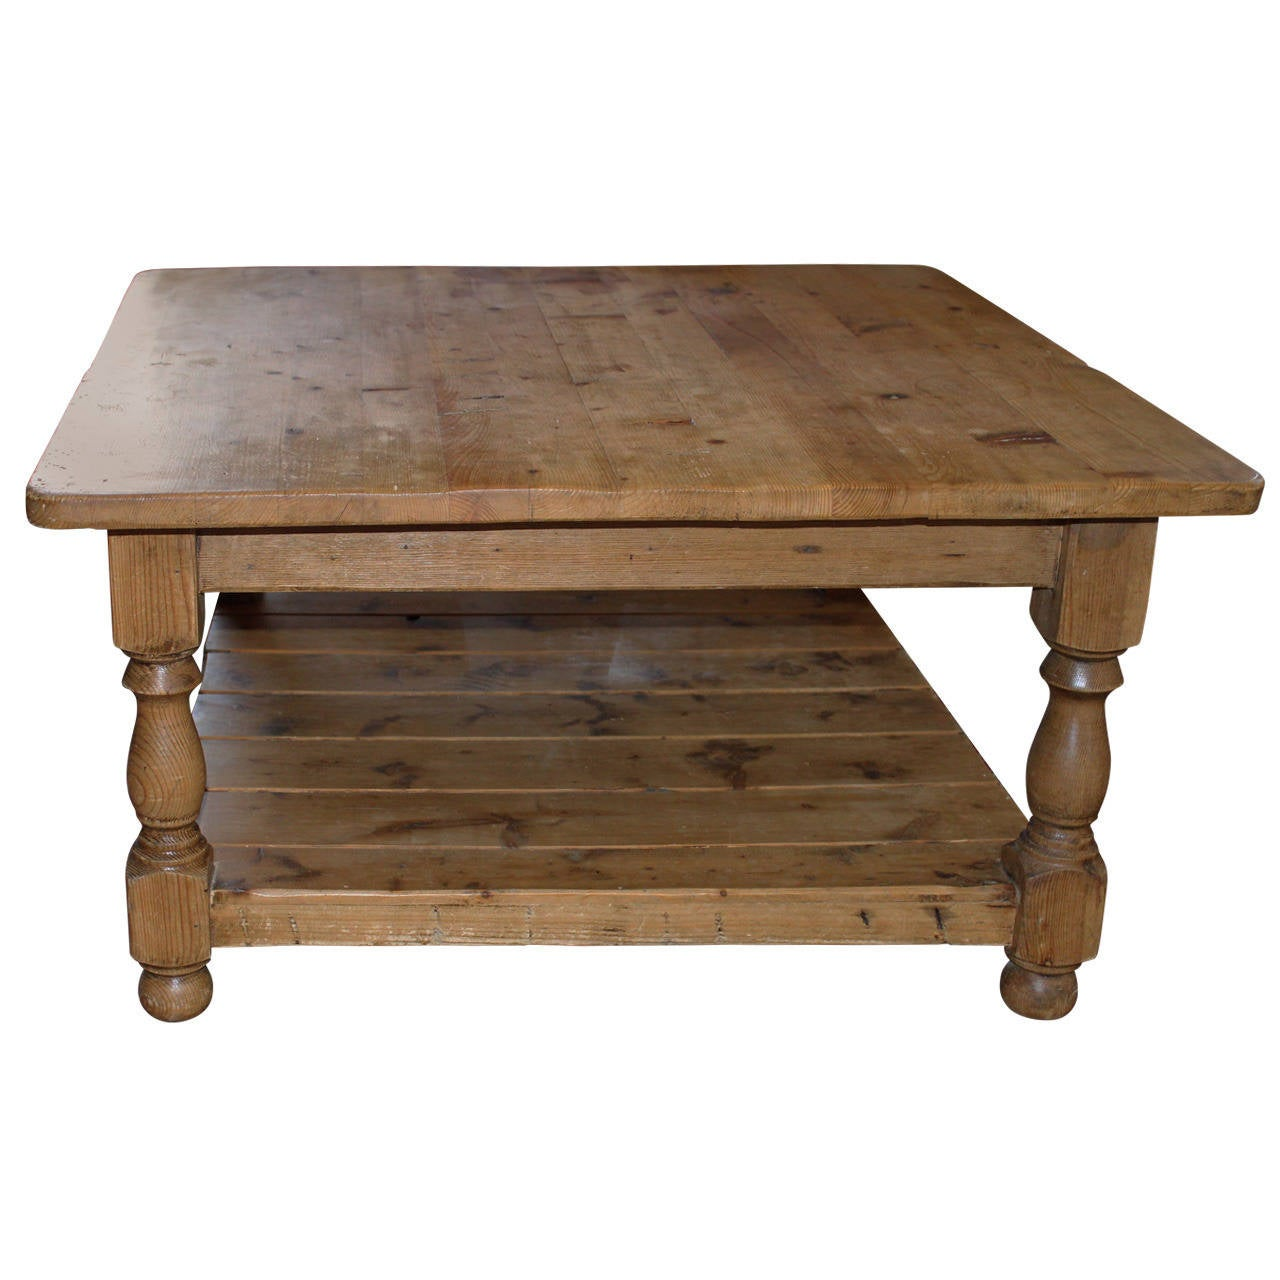 Vintage english pine coffee table at 1stdibs for Vintage coffee table